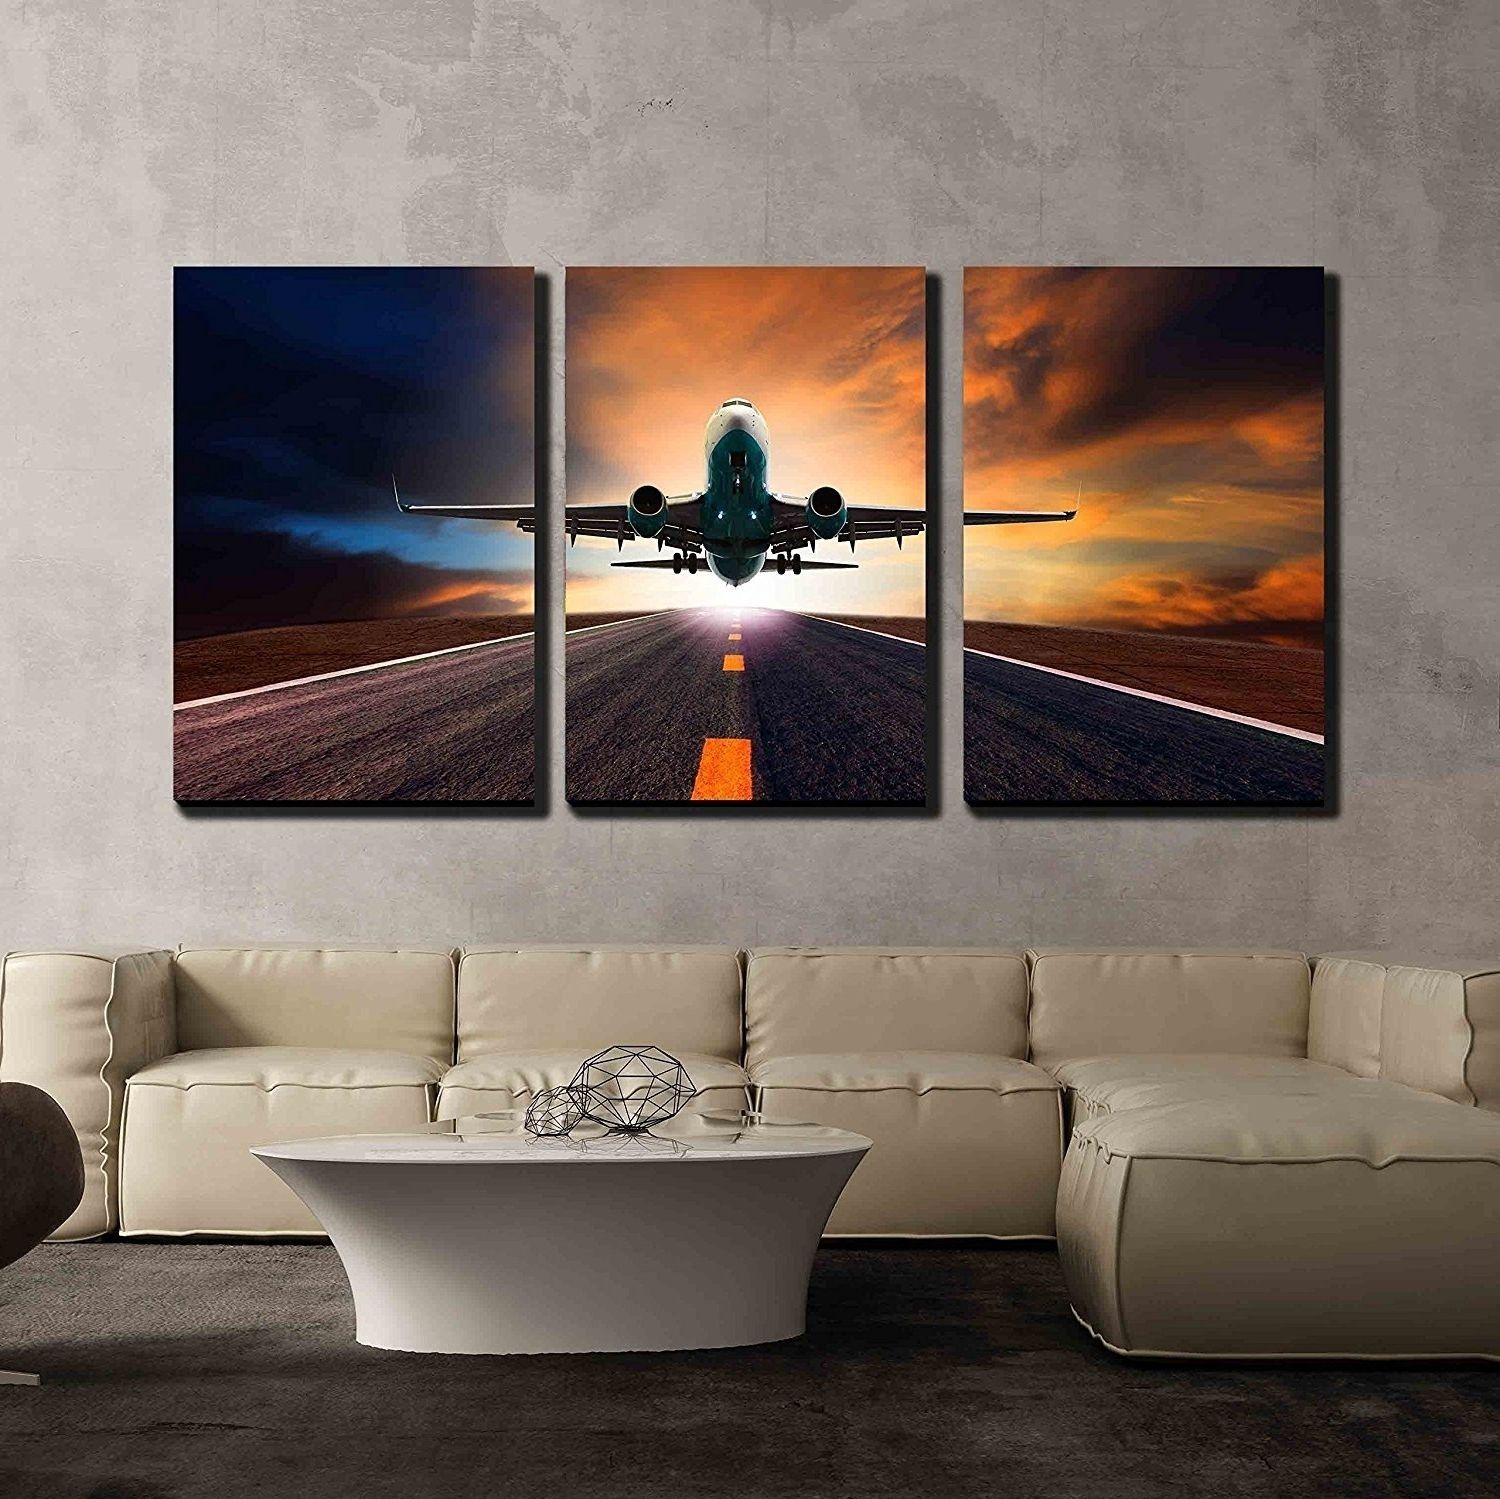 Incredible View Photos Of Multi Piece Canvas Wall Art Showing Pict Regarding Most Up To Date Multi Piece Wall Art (View 8 of 20)